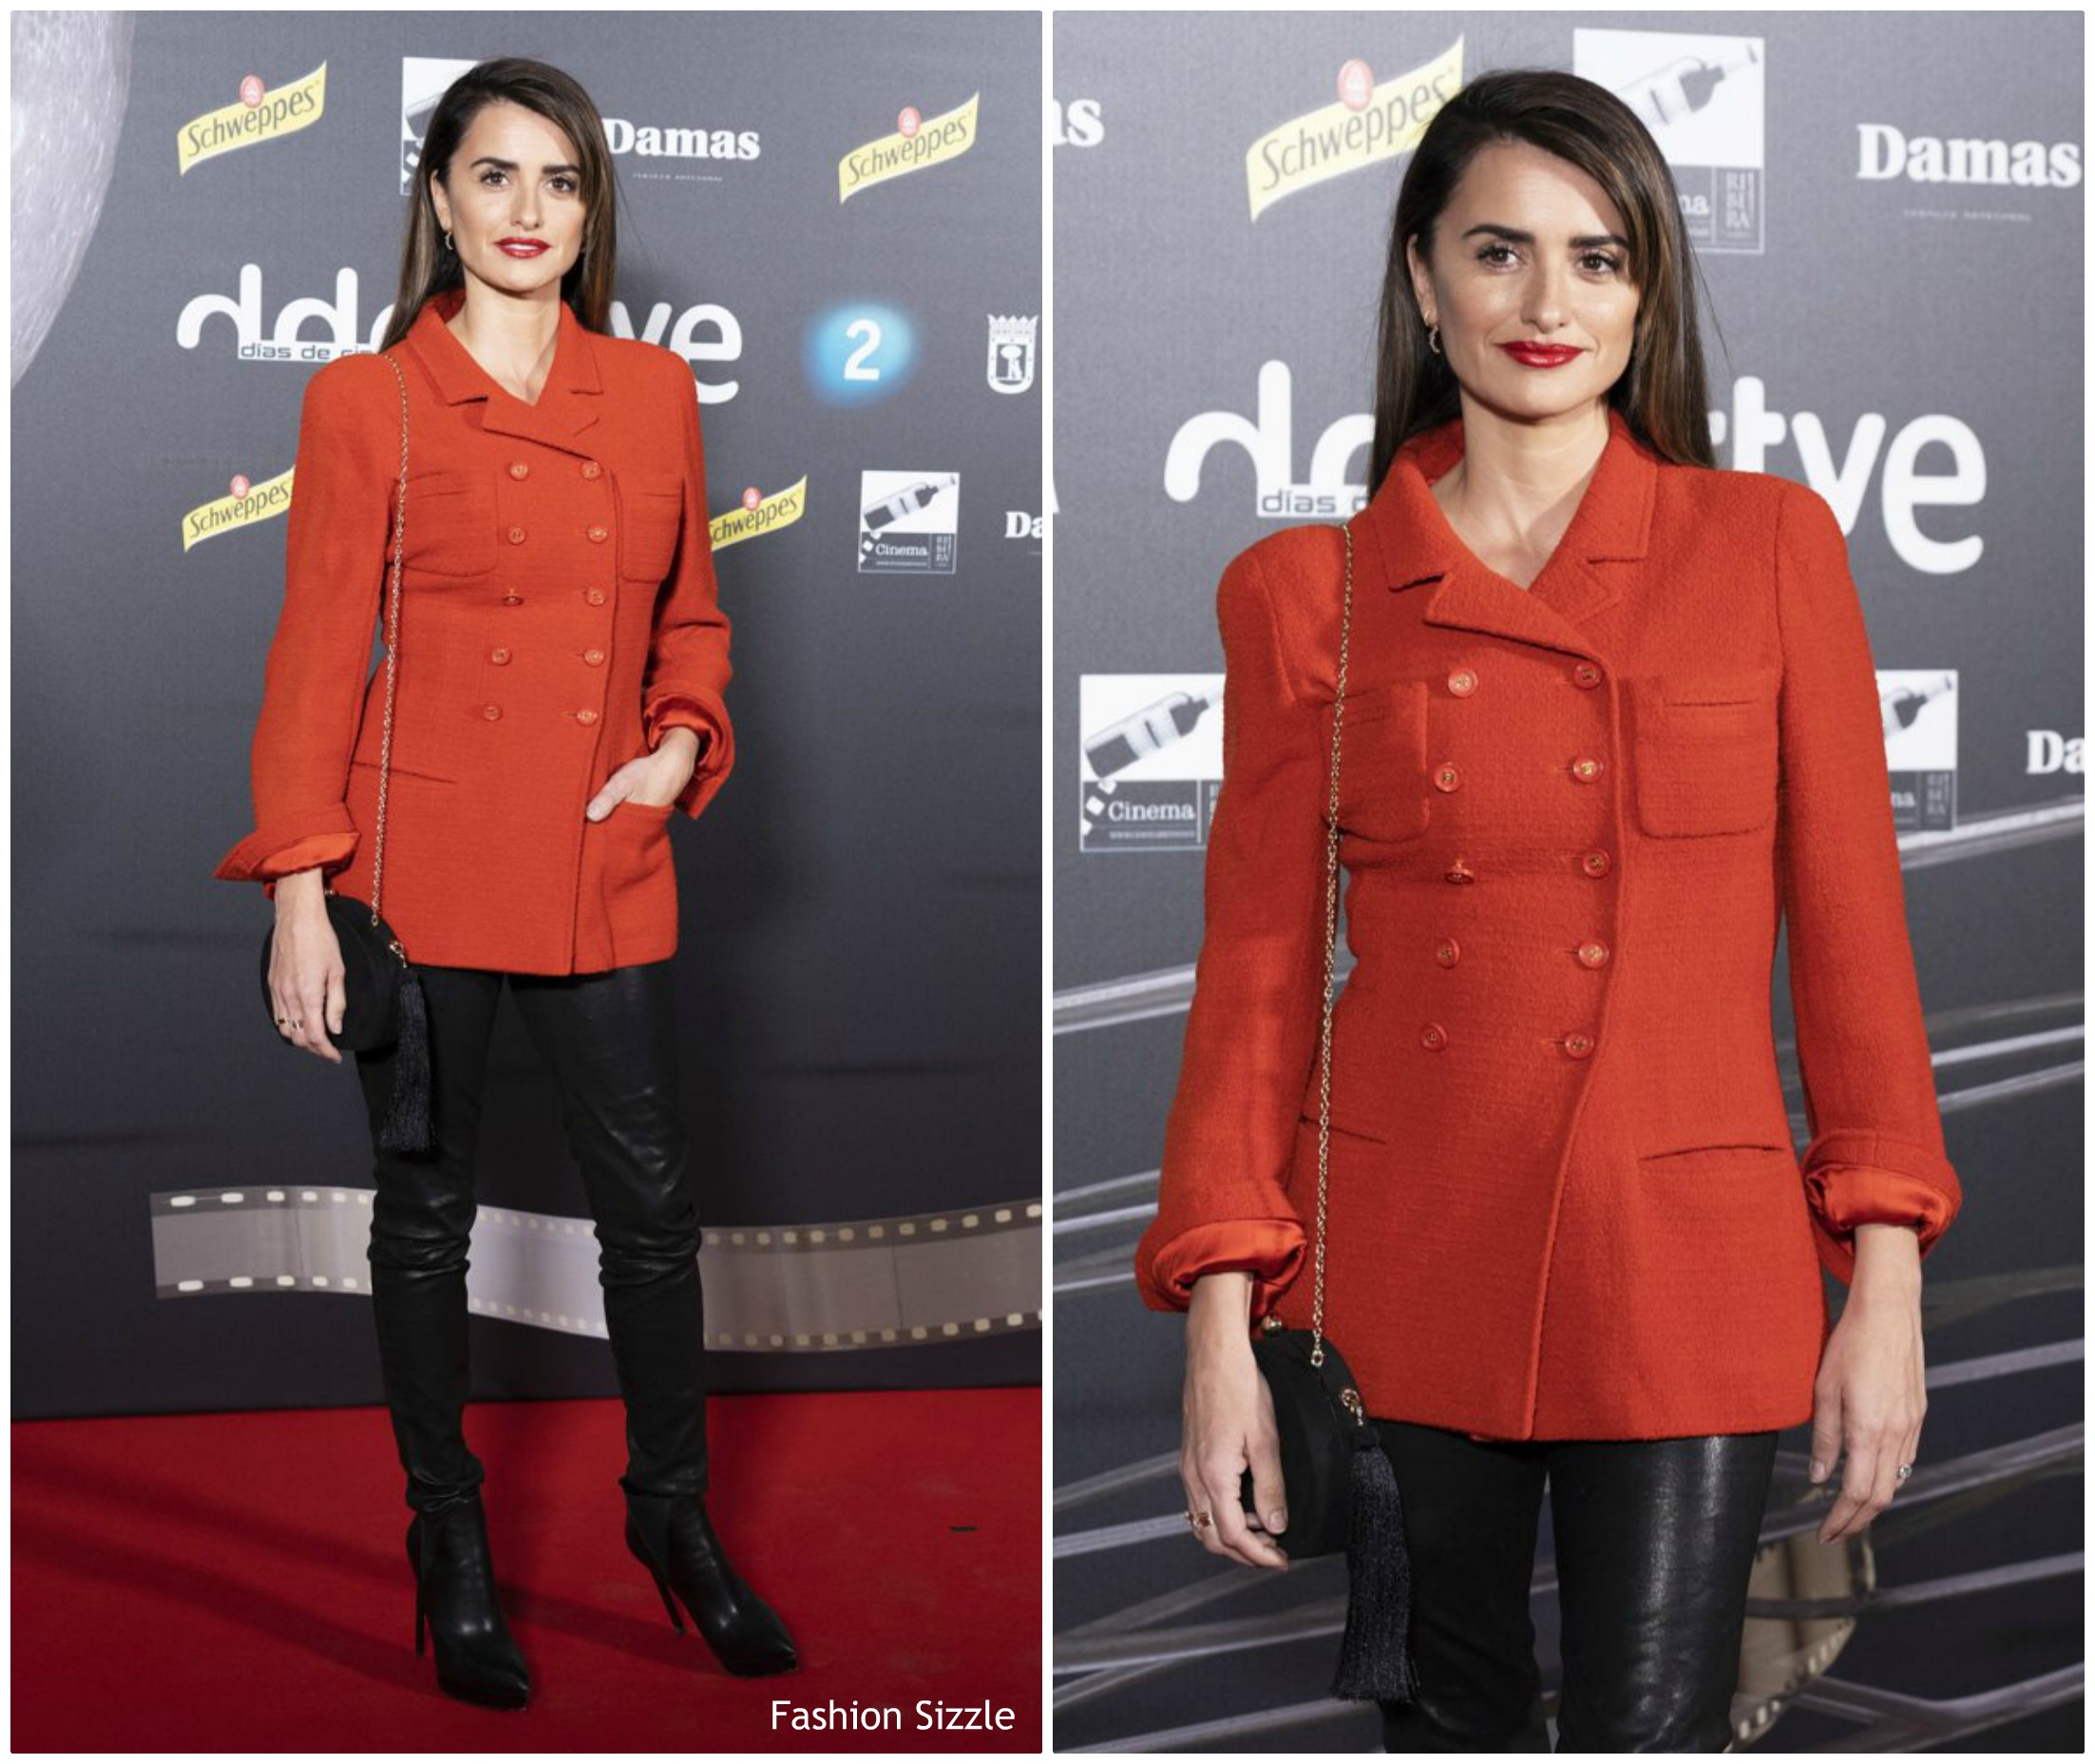 penelope-cruz-in-chanel-dias-de-cine-awards